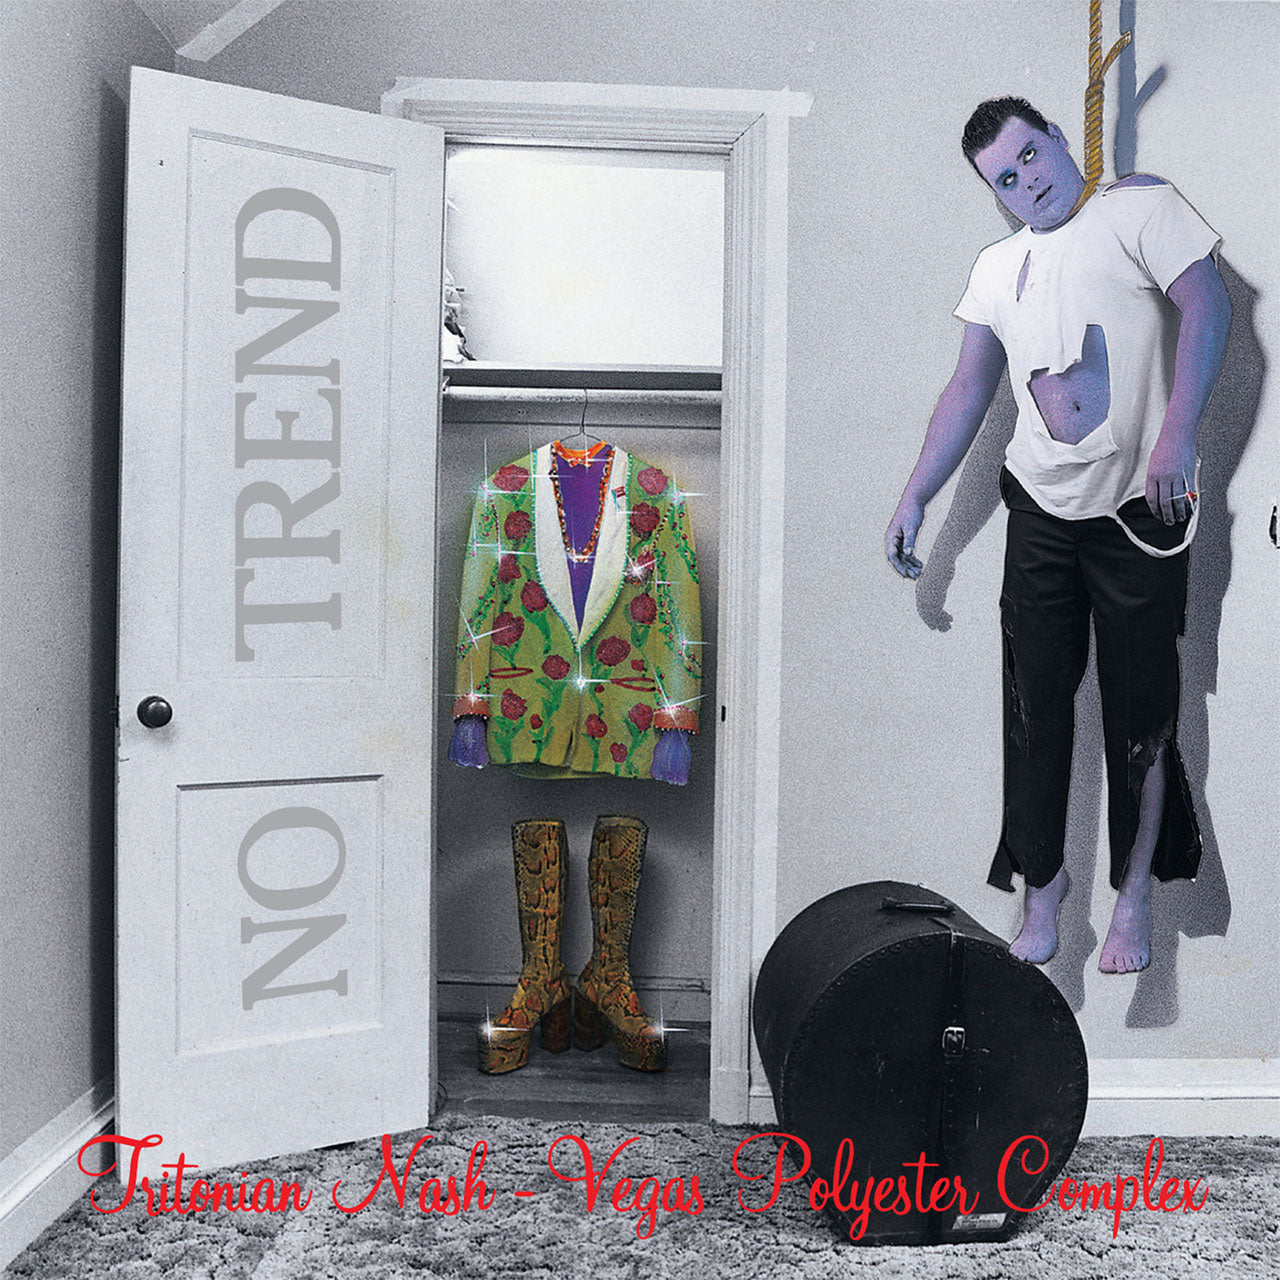 No Trend - Tritonian Nash-Vegas Polyester Complex (CD)